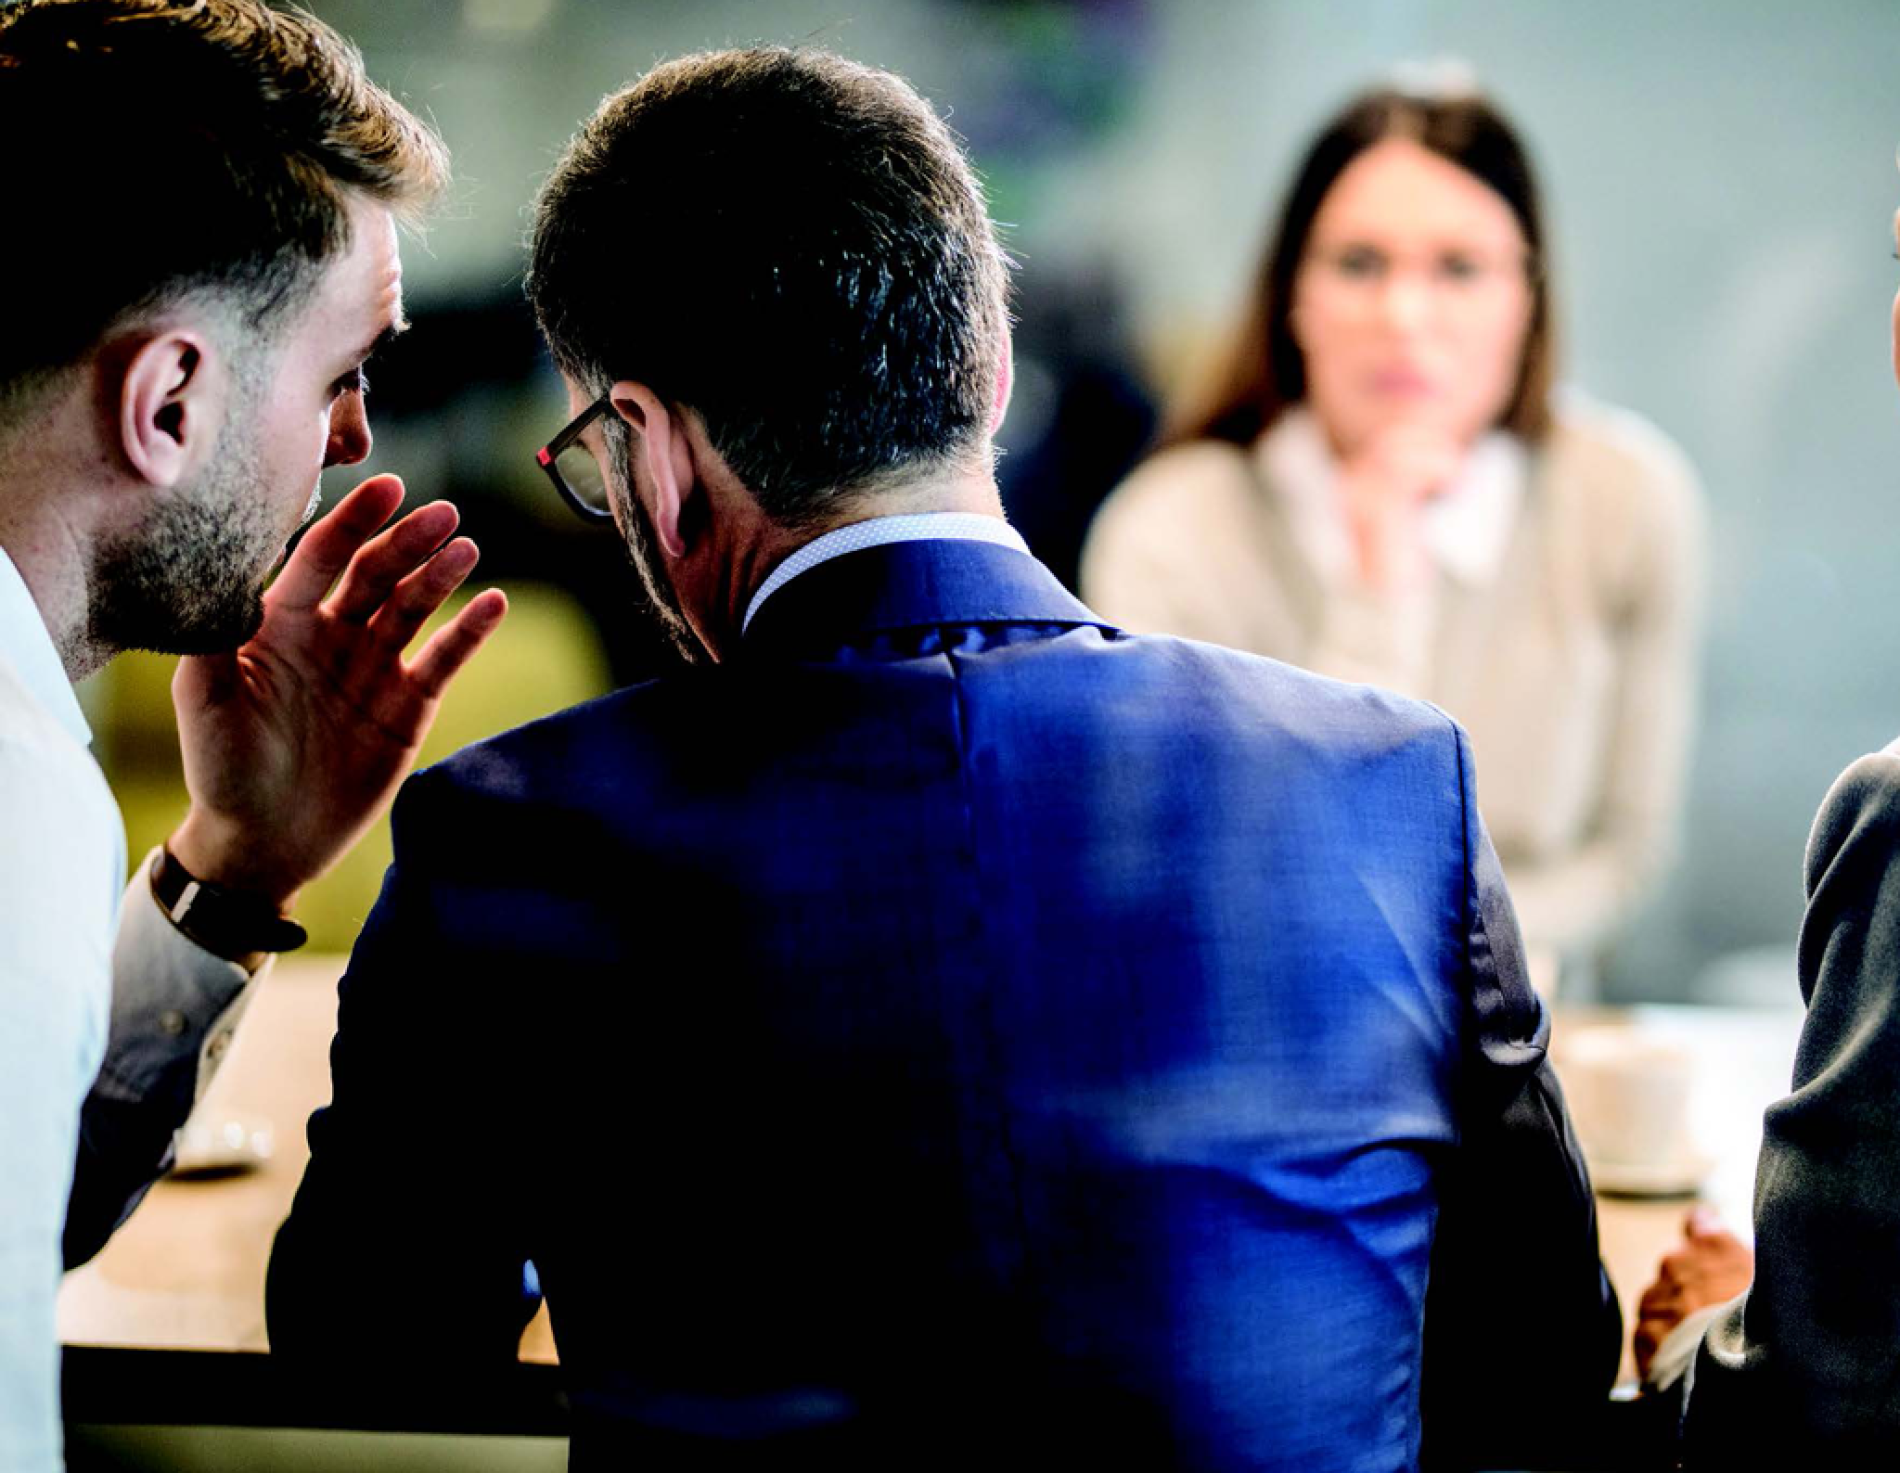 Man at a conference table whispering to another man's ear